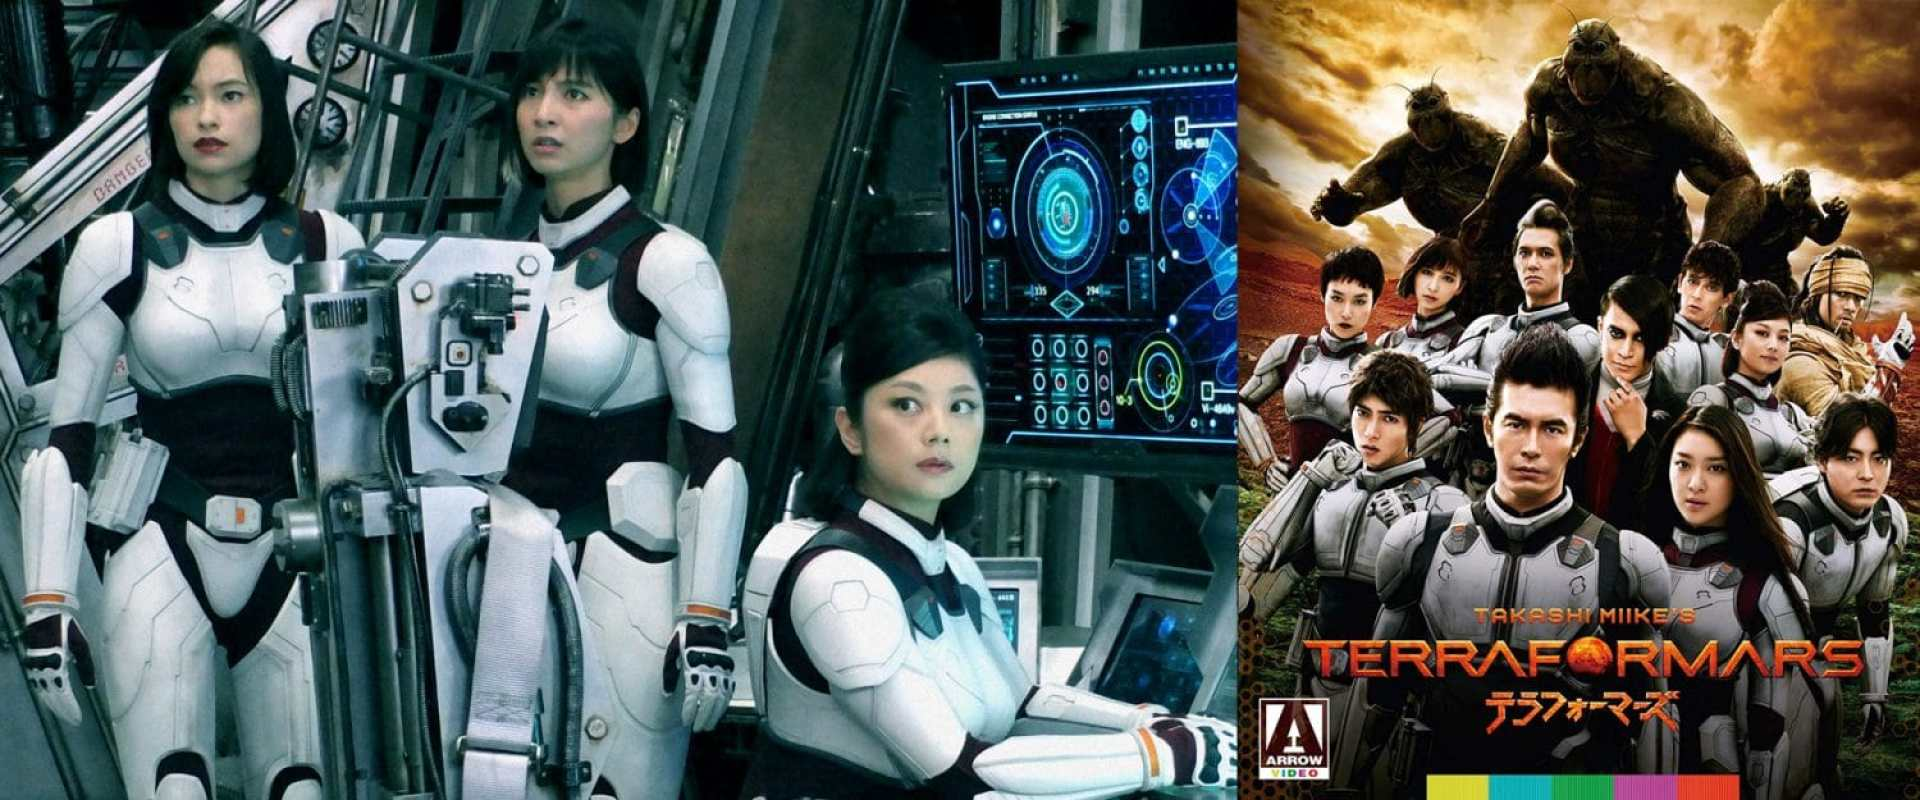 The TerraFormars movie comes to blu-ray via Arrow this week.